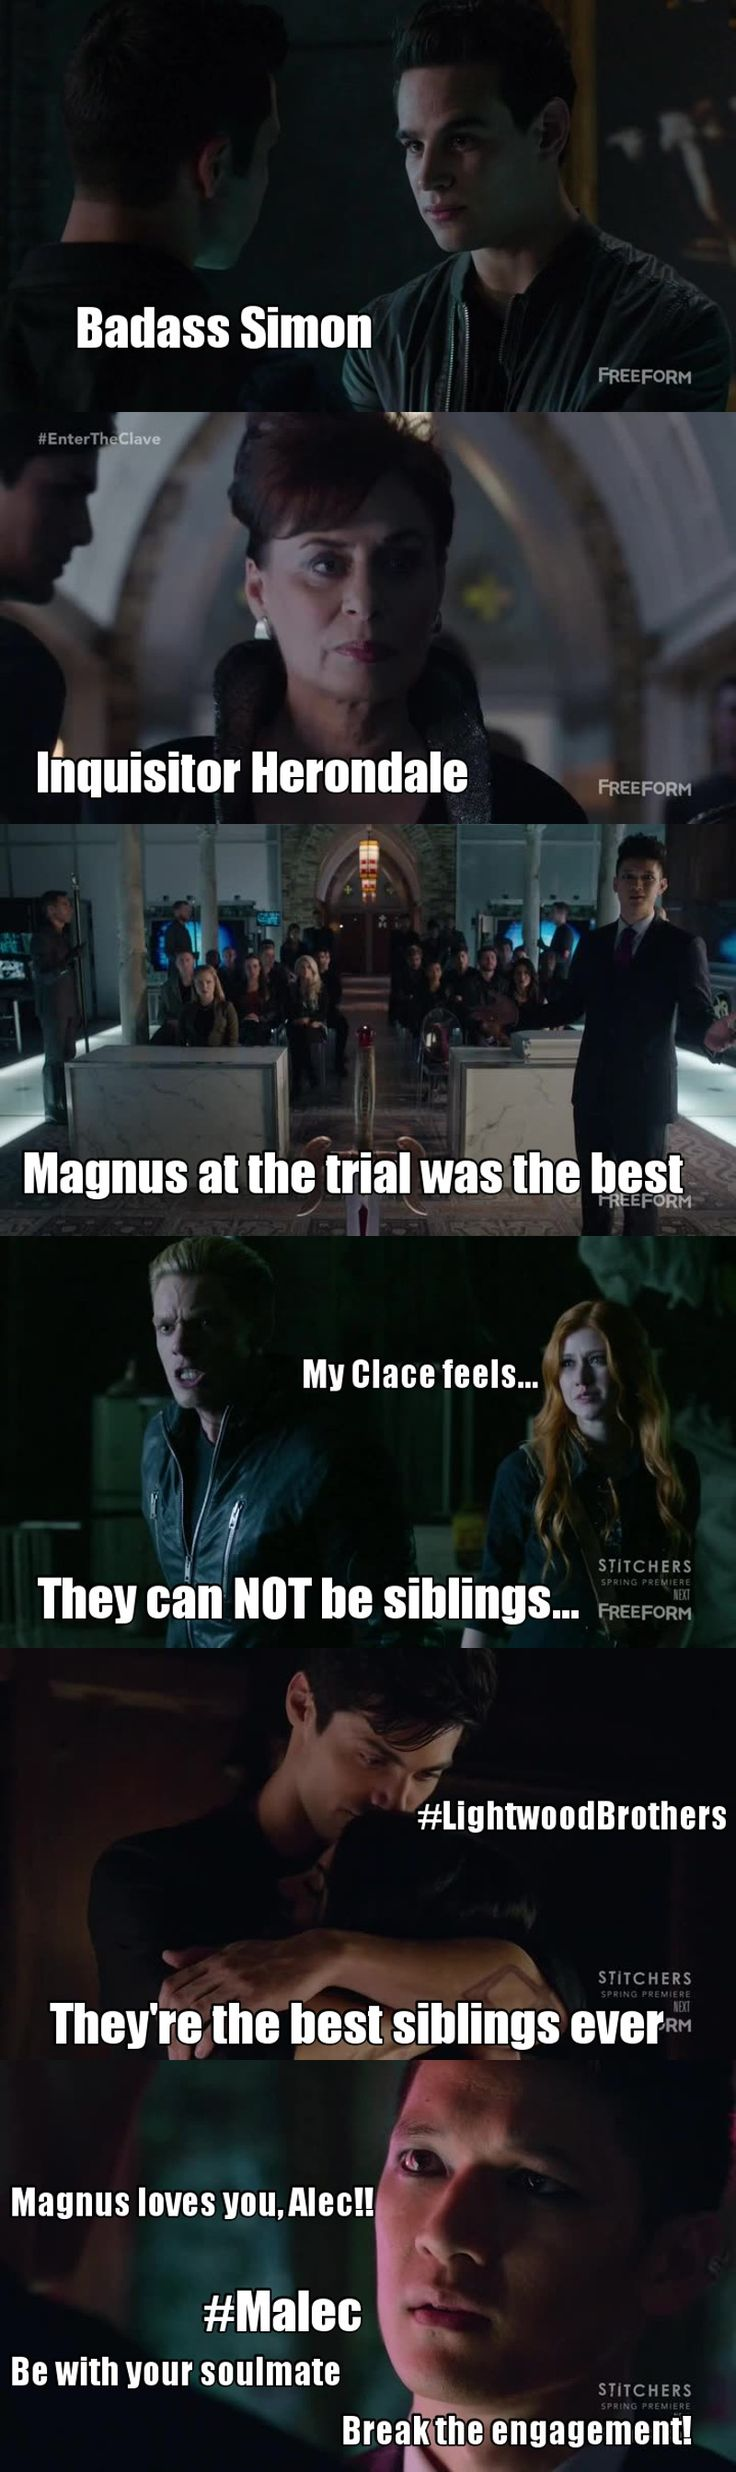 Shadowhunters S01E11 - Blood Calls To Blood - Best episode so far!! We had Renwick, we had Valentine revealing Jace is his son, as well as Clary! We had an excellent Magnus defending Isabelle from the terrible inquisitor Herondale ()...!!! Everything was perfect!!!! And Simon at the end of the episode when Luke tells him Clary and Jace are brother and sister... Ahahah so funny!!!! My felling almost exploded!!!